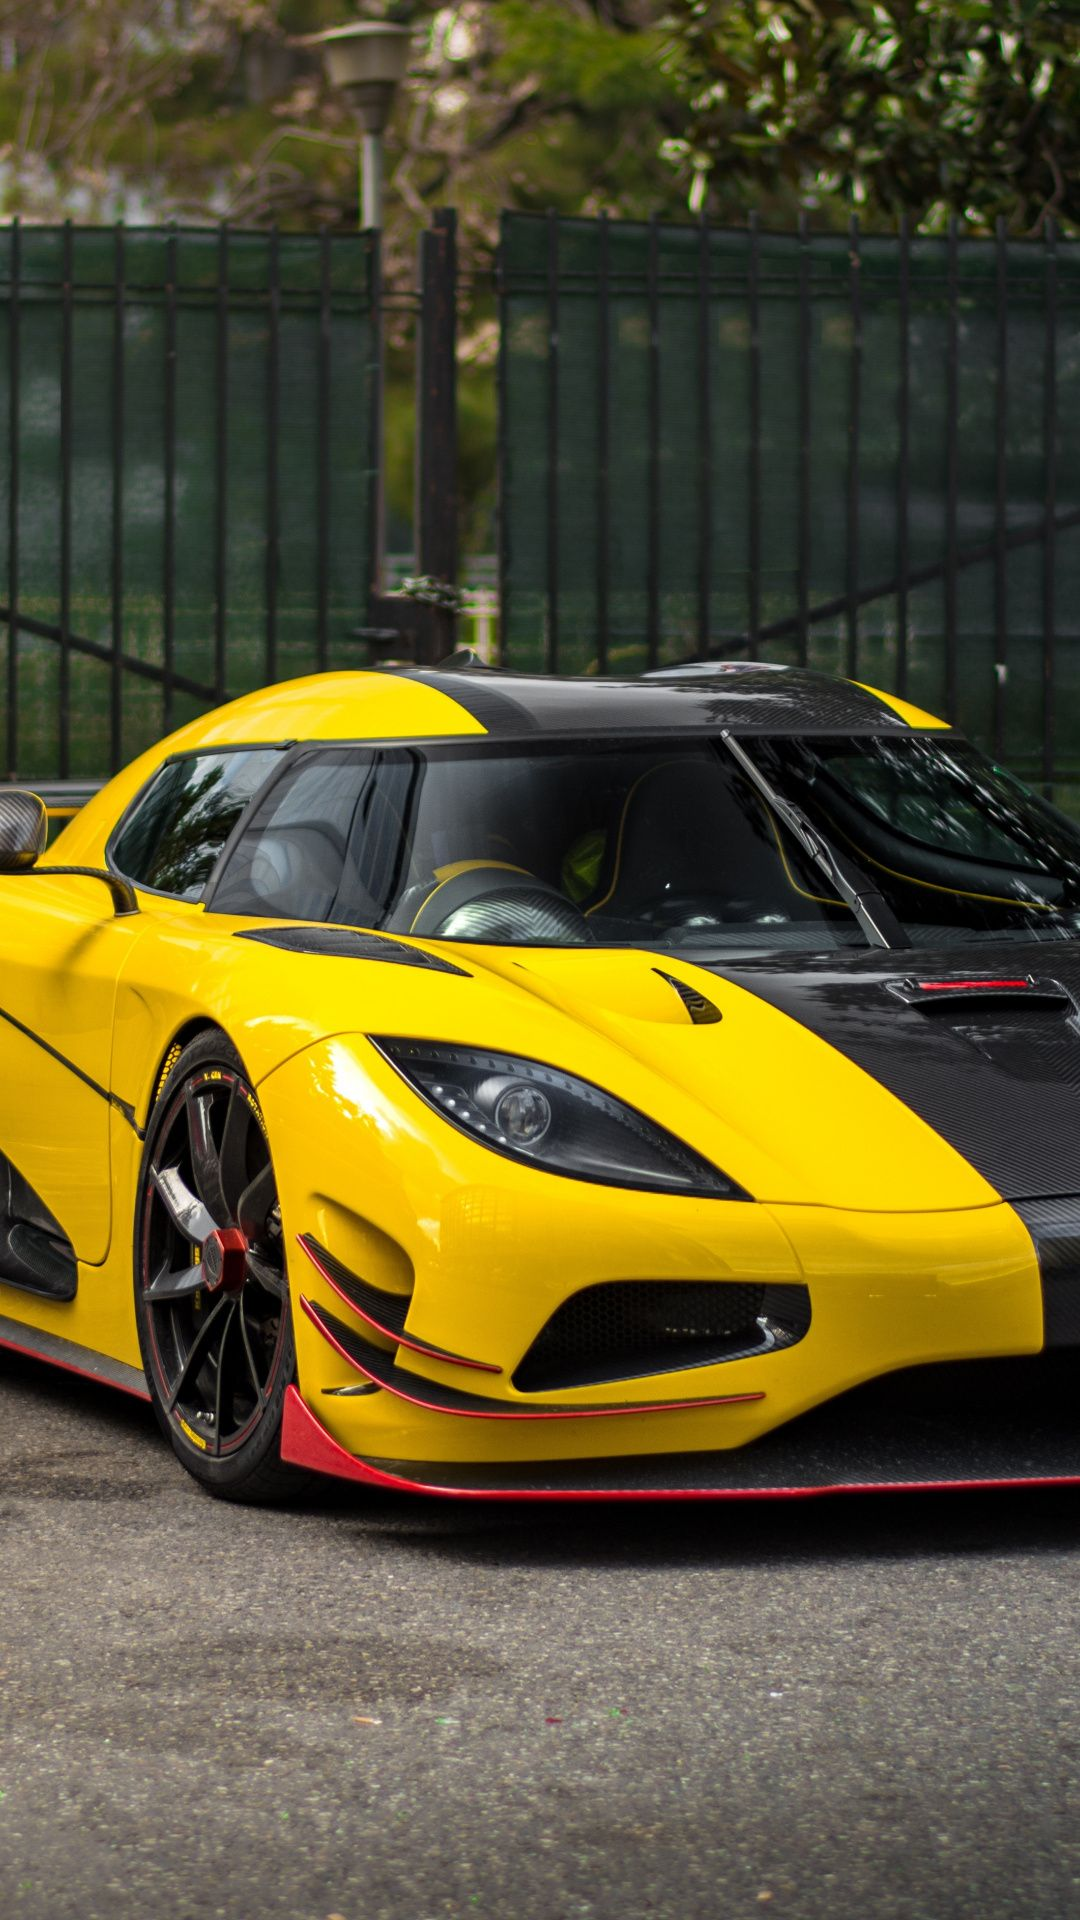 Sports Car Yellow Koenigsegg Agera Wallpaper Koenigsegg